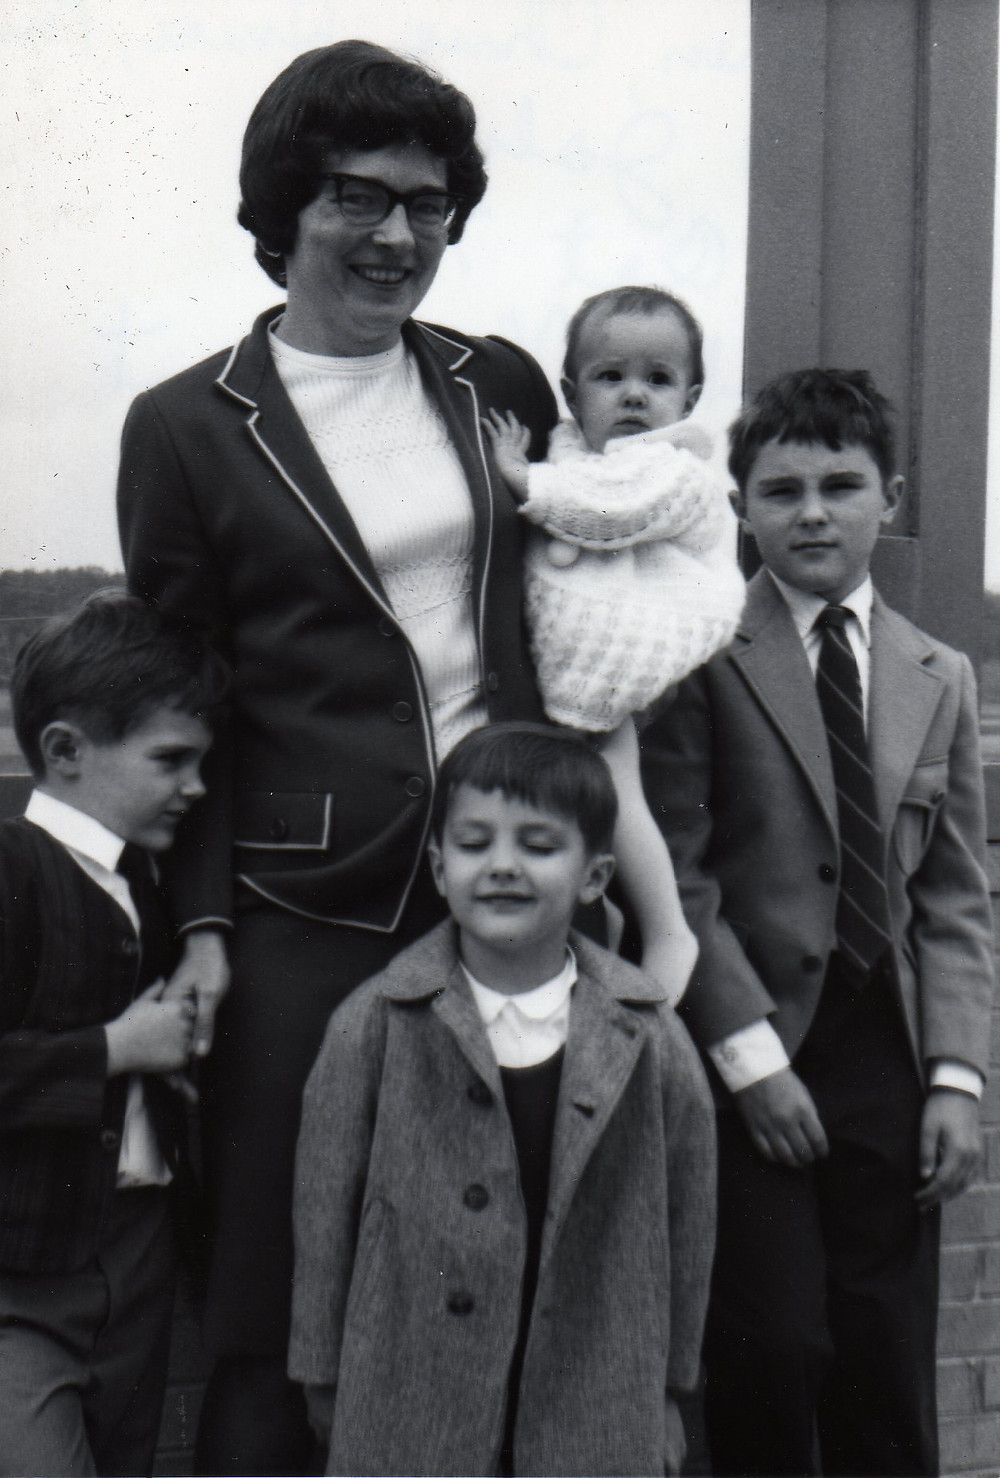 Christine and her kids all dressed up